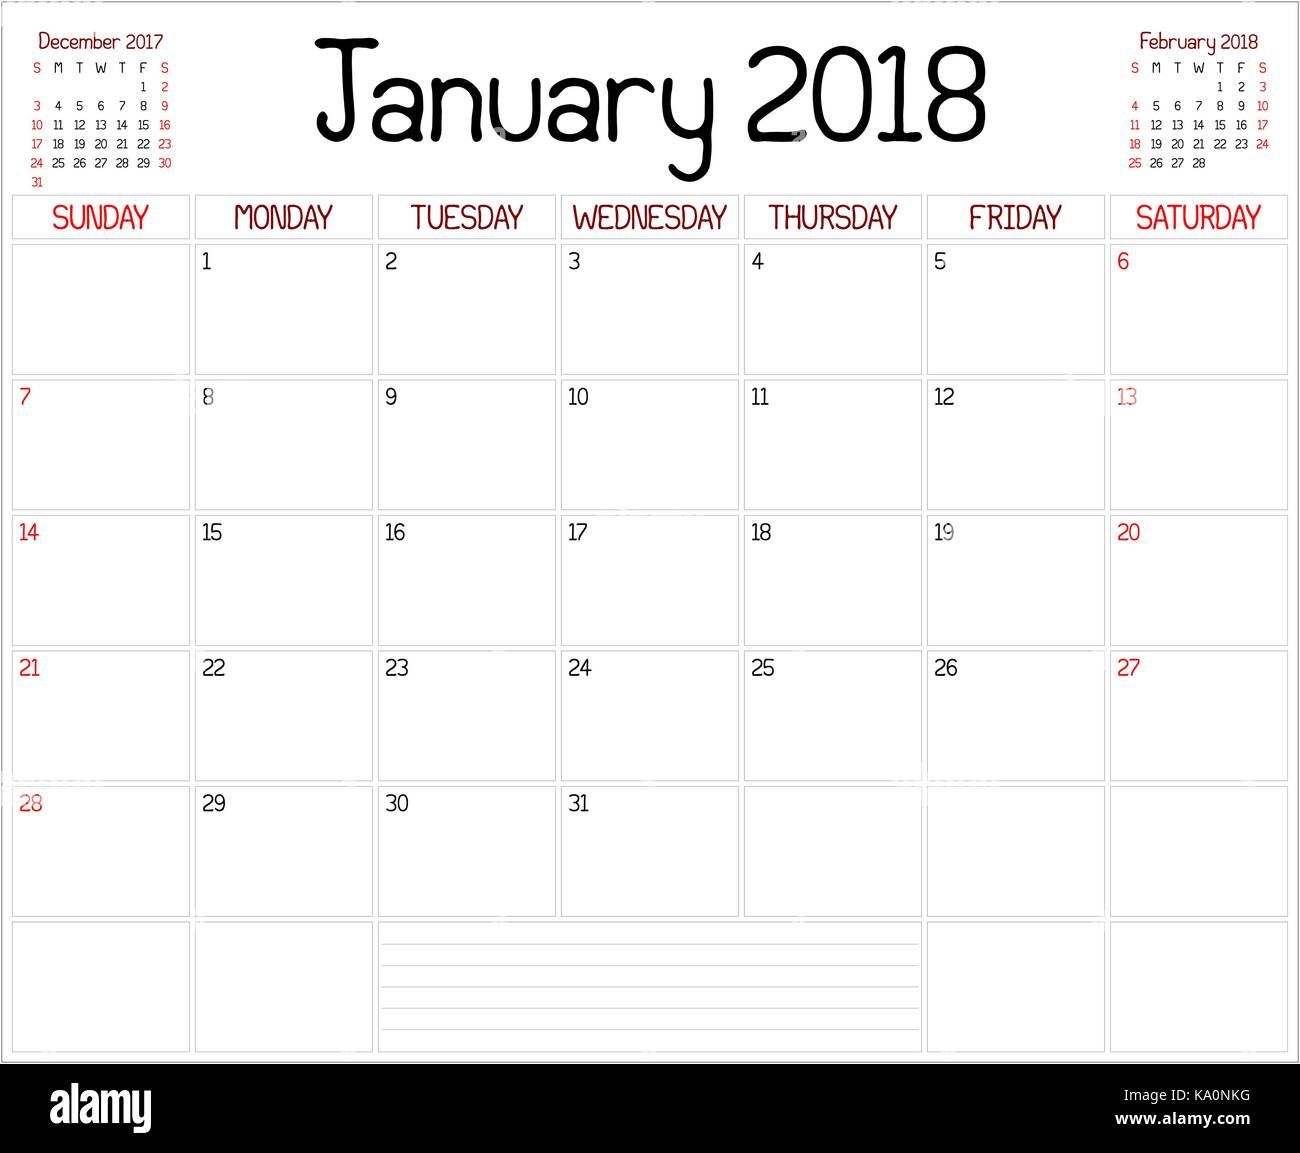 January Calendar Planner : Year january planner a monthly calendar for